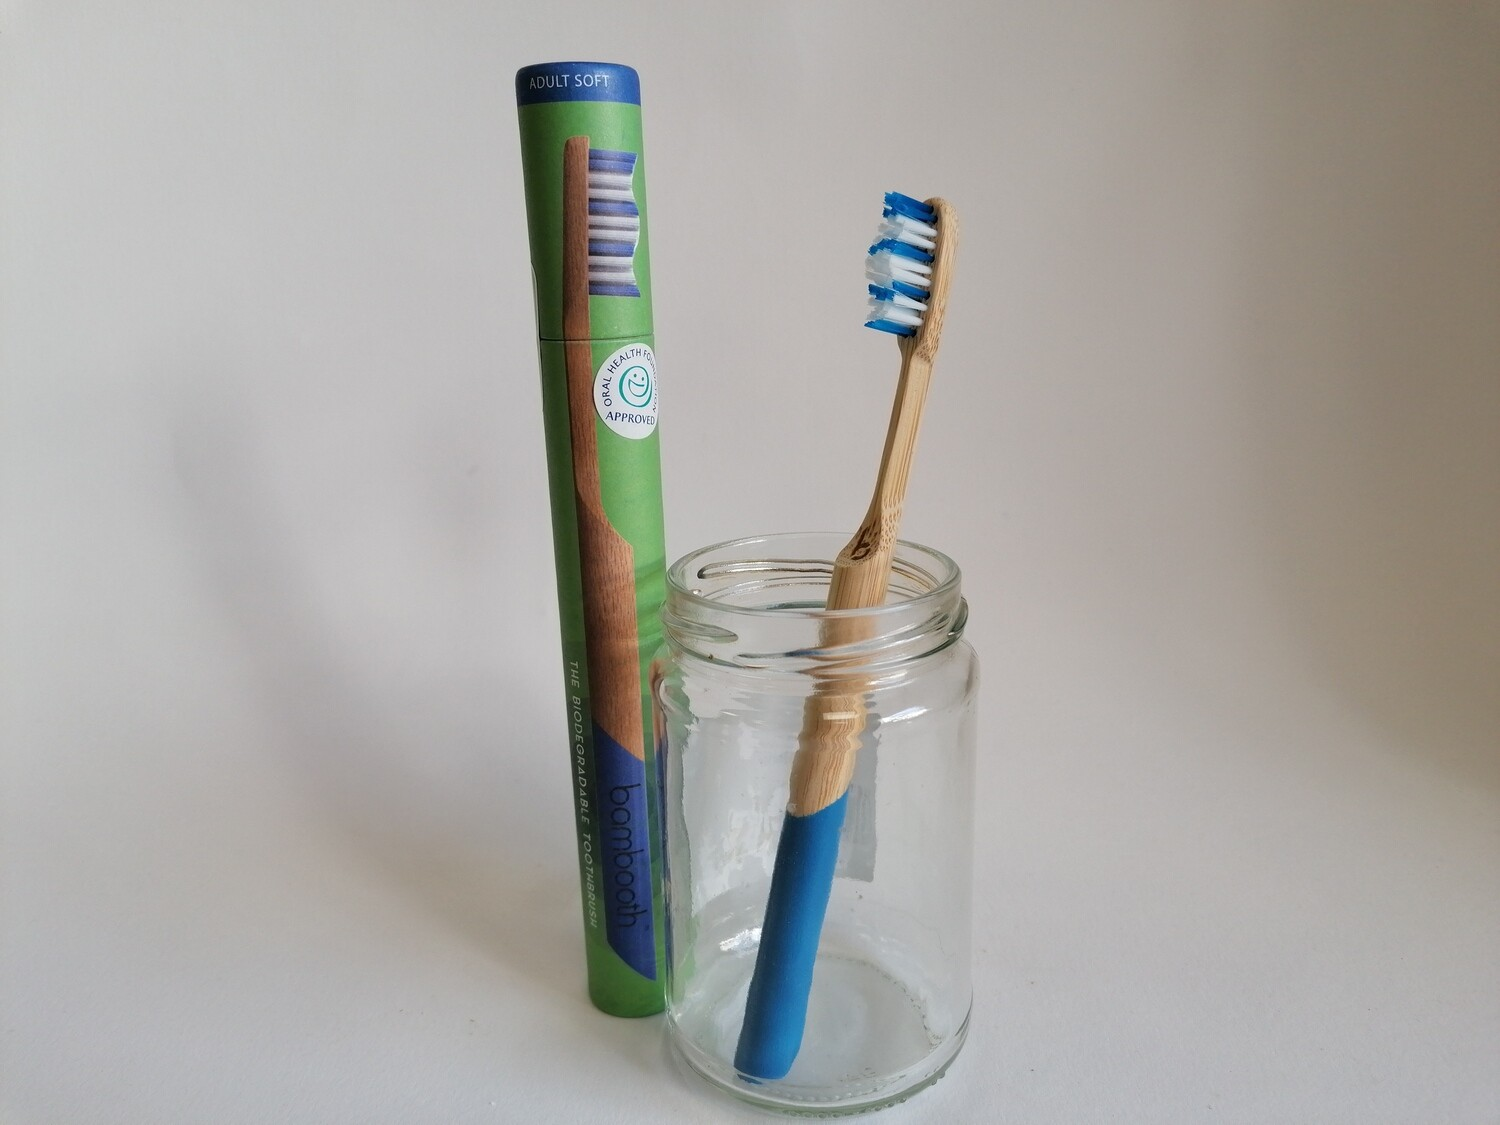 Bambooth Adults Toothbrush Soft Bristles